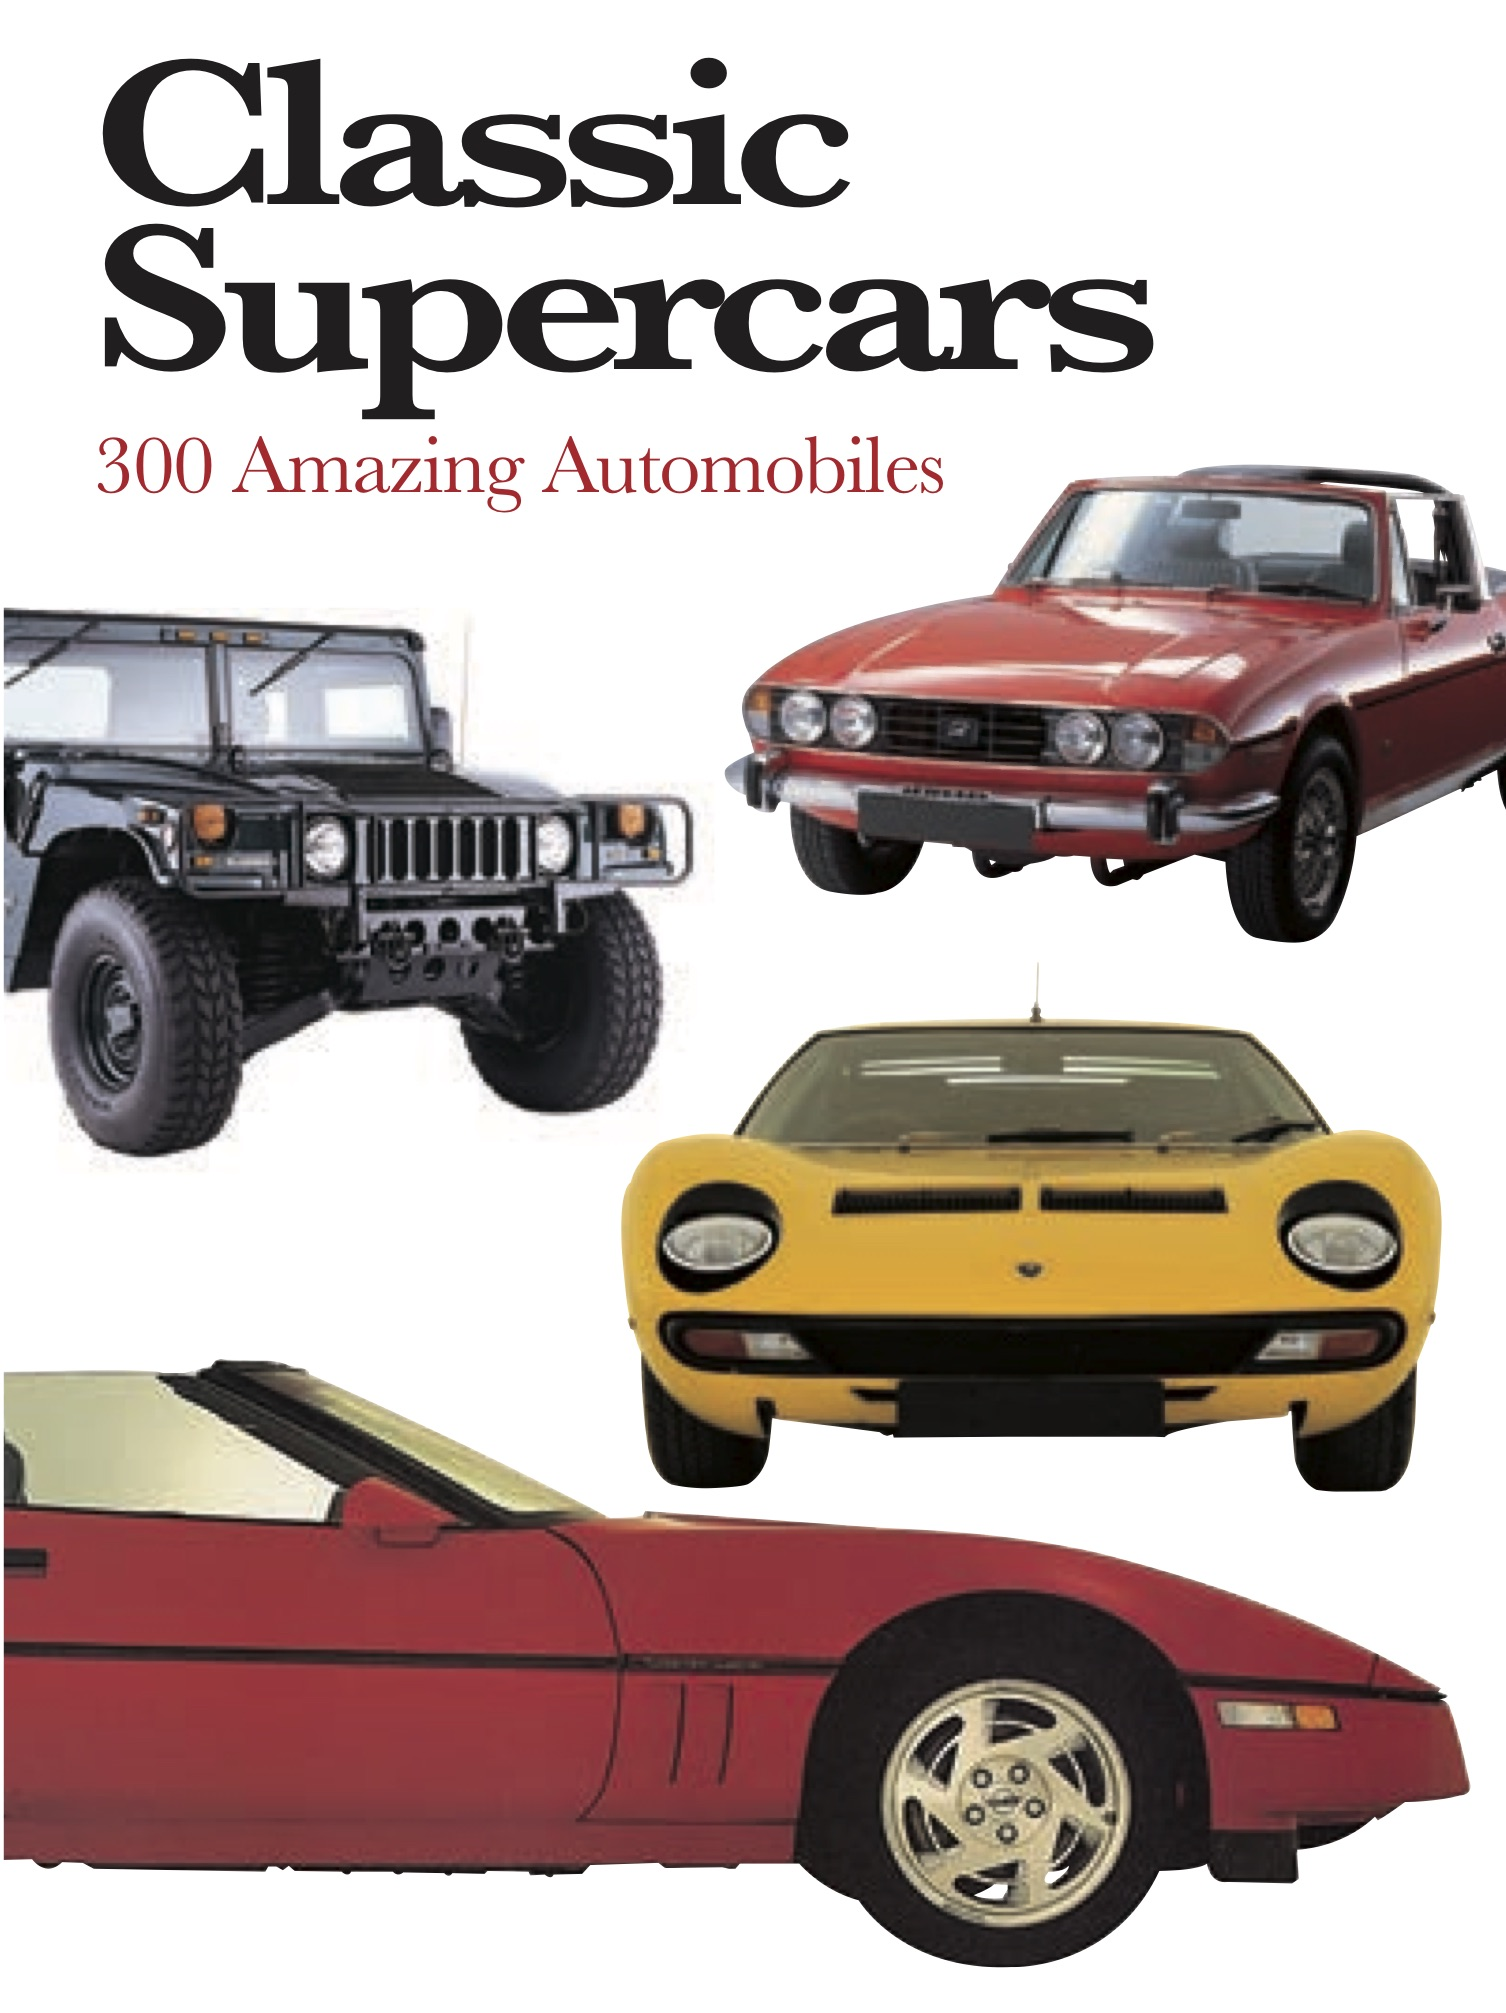 Classic Supercars: Mini Encyclopedia